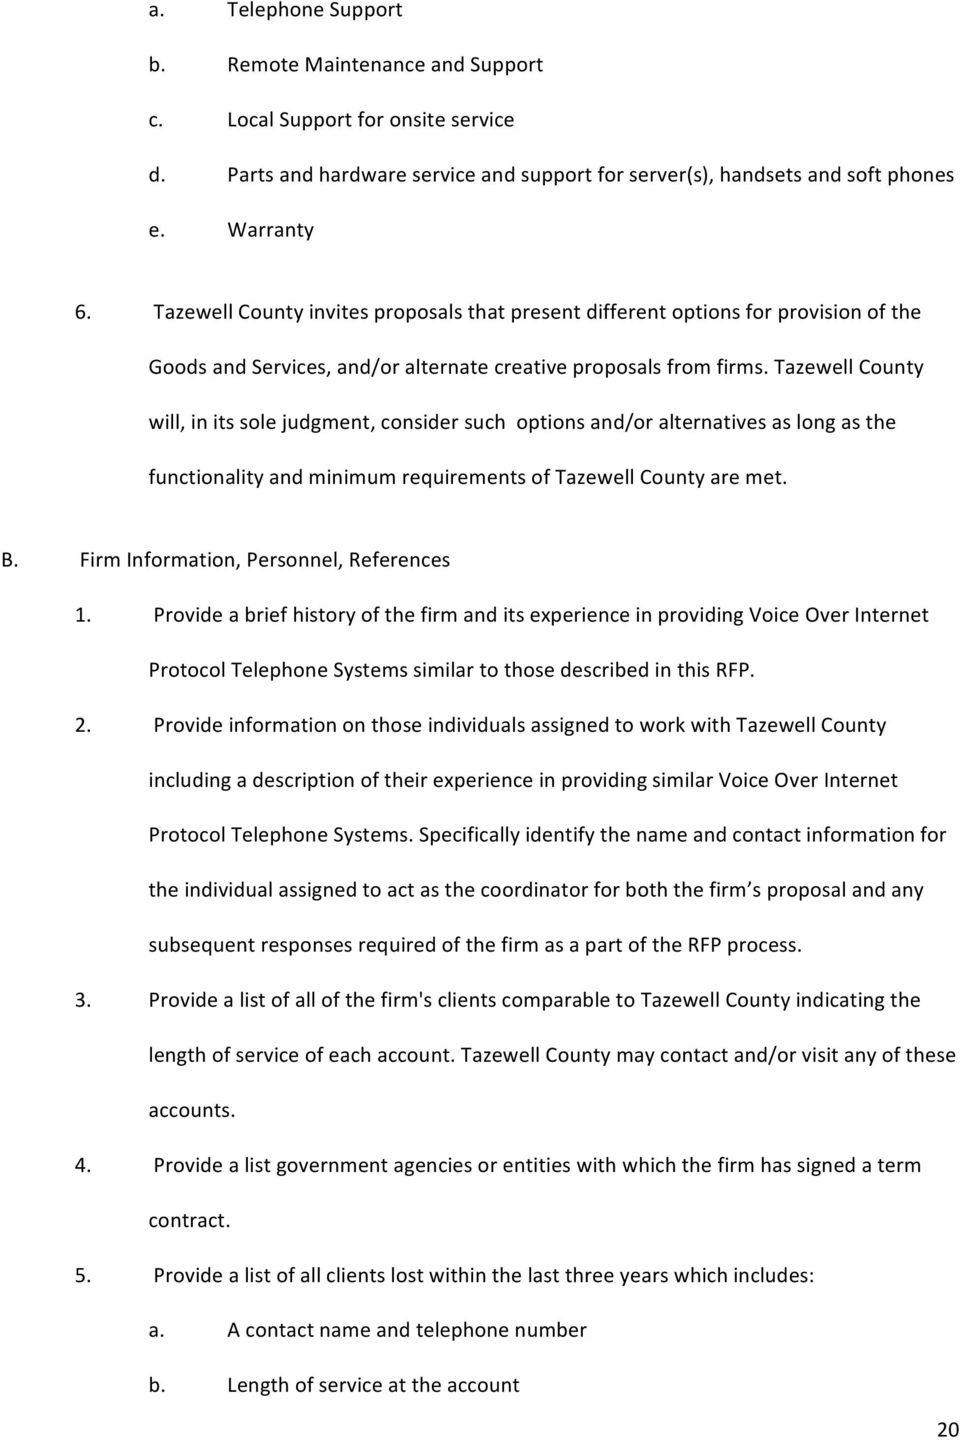 Tazewell County will, in its sole judgment, consider such options and/or alternatives as long as the functionality and minimum requirements of Tazewell County are met. B.